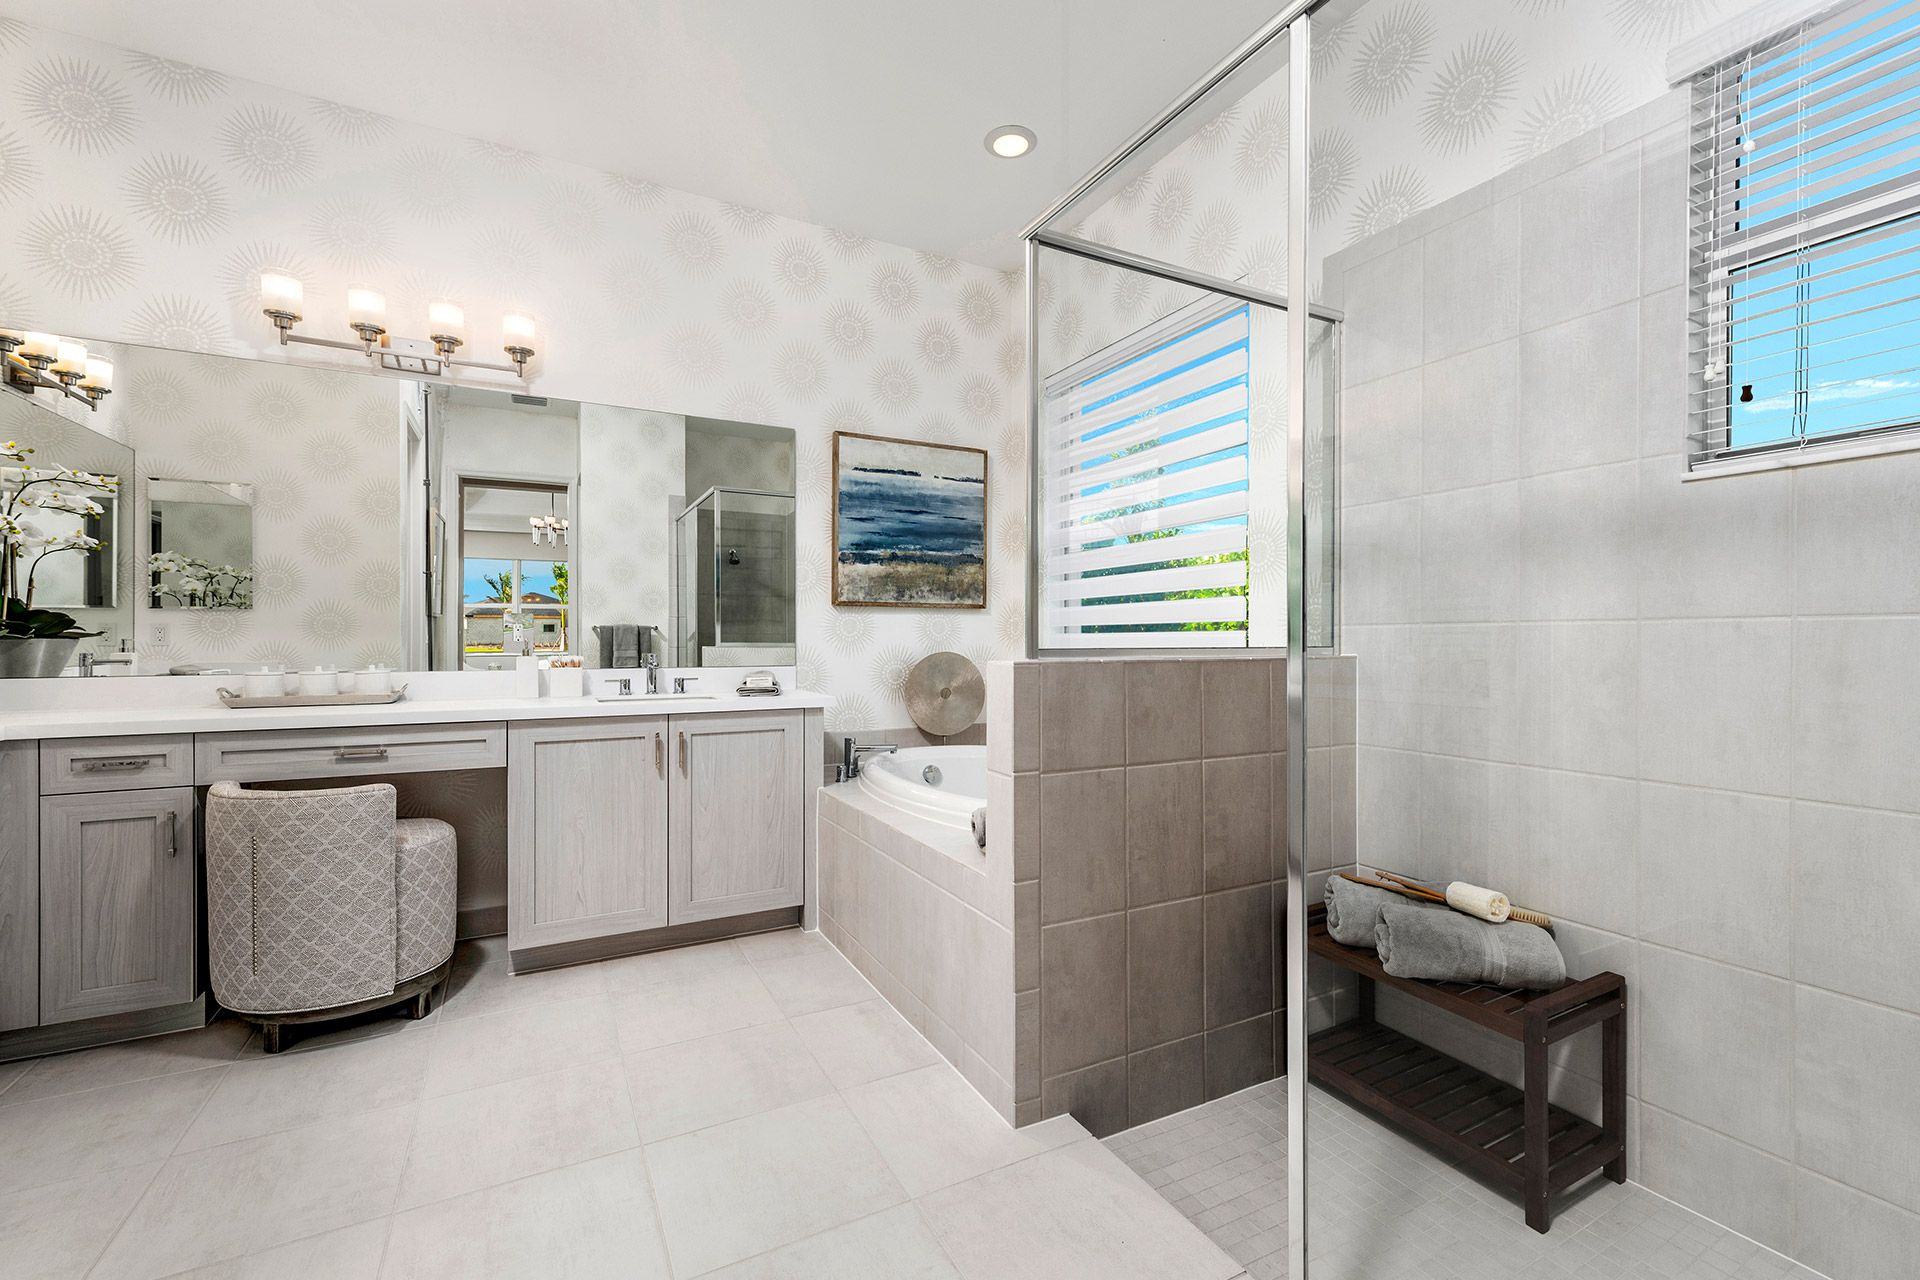 Bathroom featured in the Cabernet By GL Homes in Palm Beach County, FL